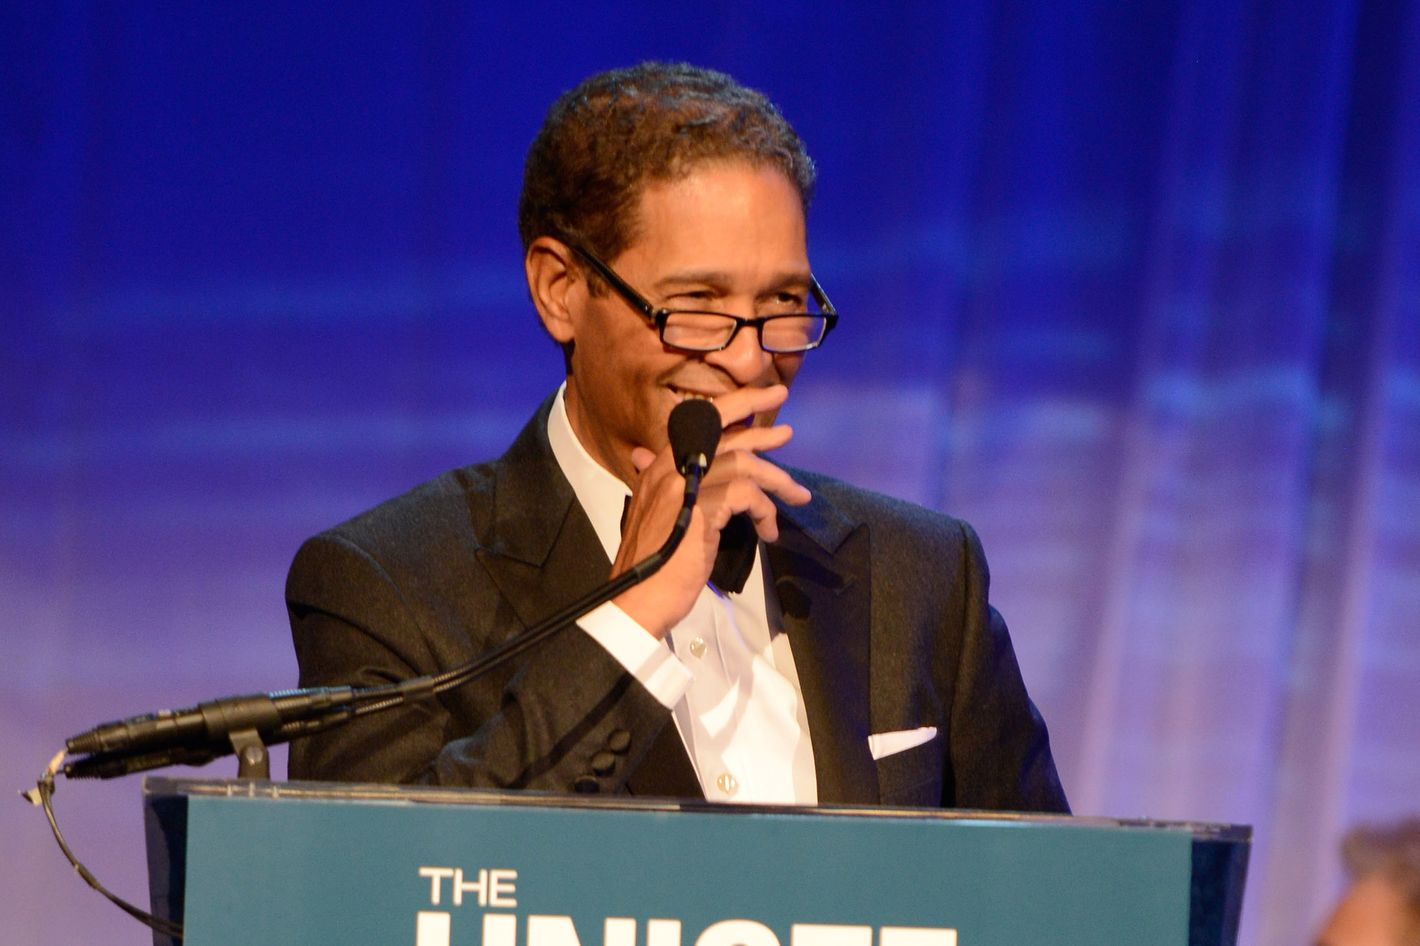 Bryant Gumbel speaks on stage at The Ninth Annual UNICEF Snowflake Ball at Cipriani, Wall Street on December 3, 2013 in New York City.